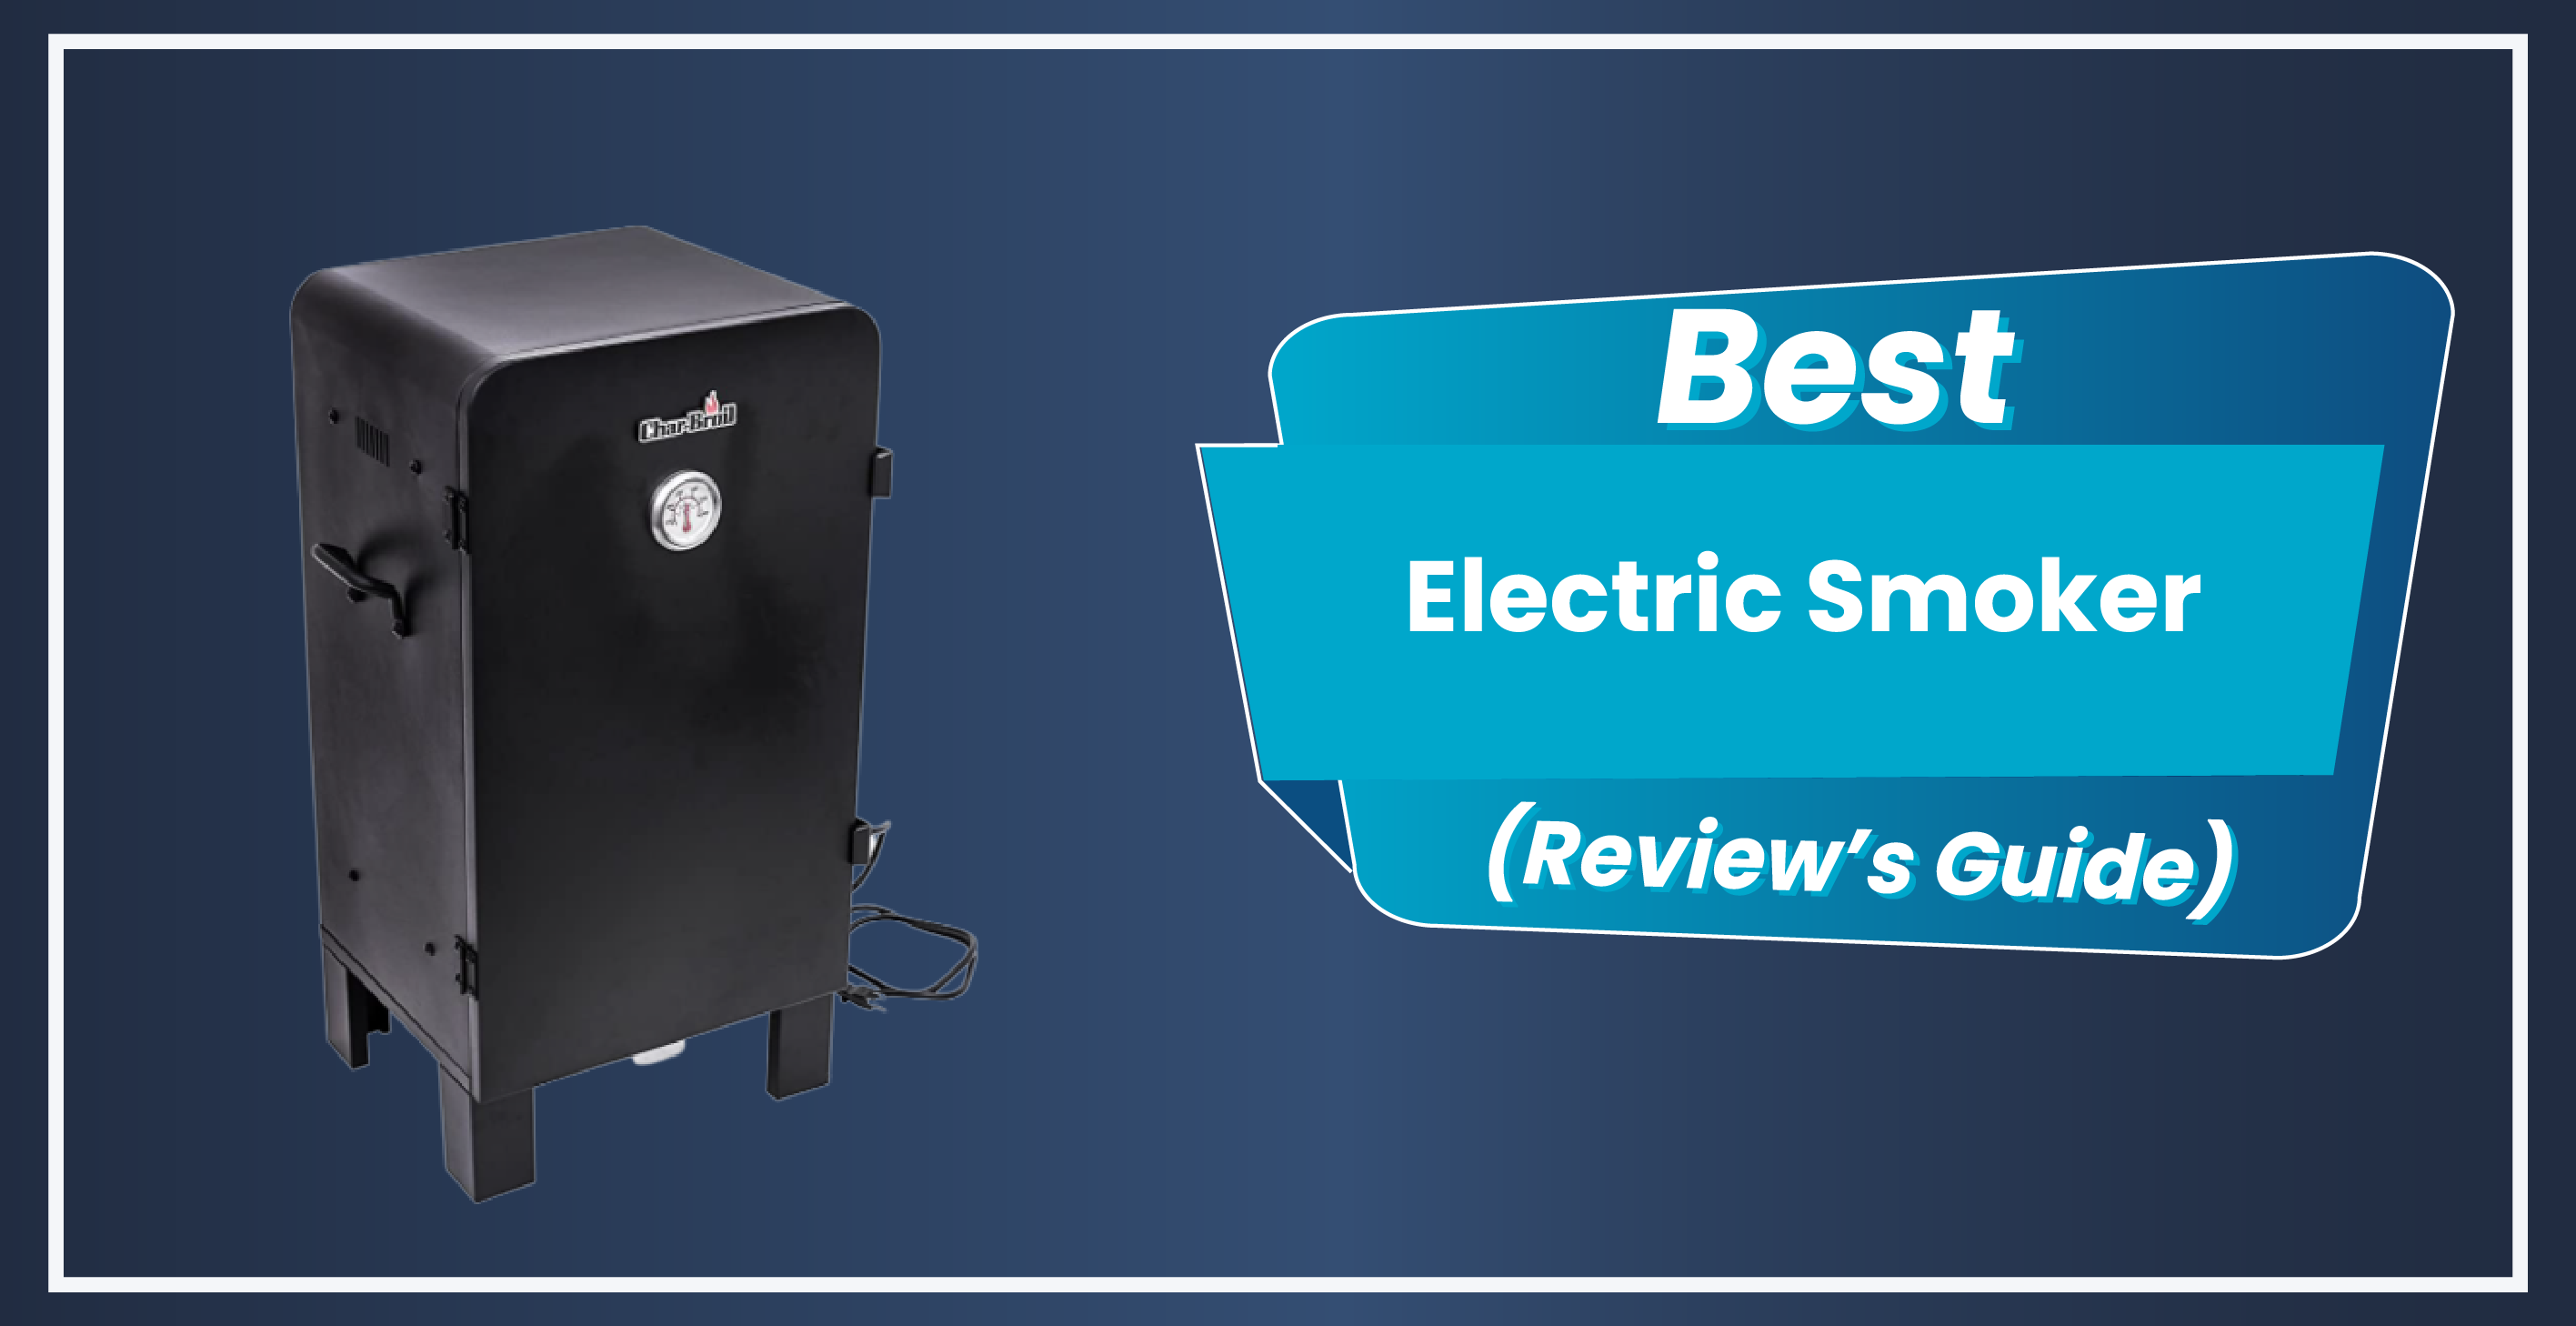 9 Best Electric Smoker